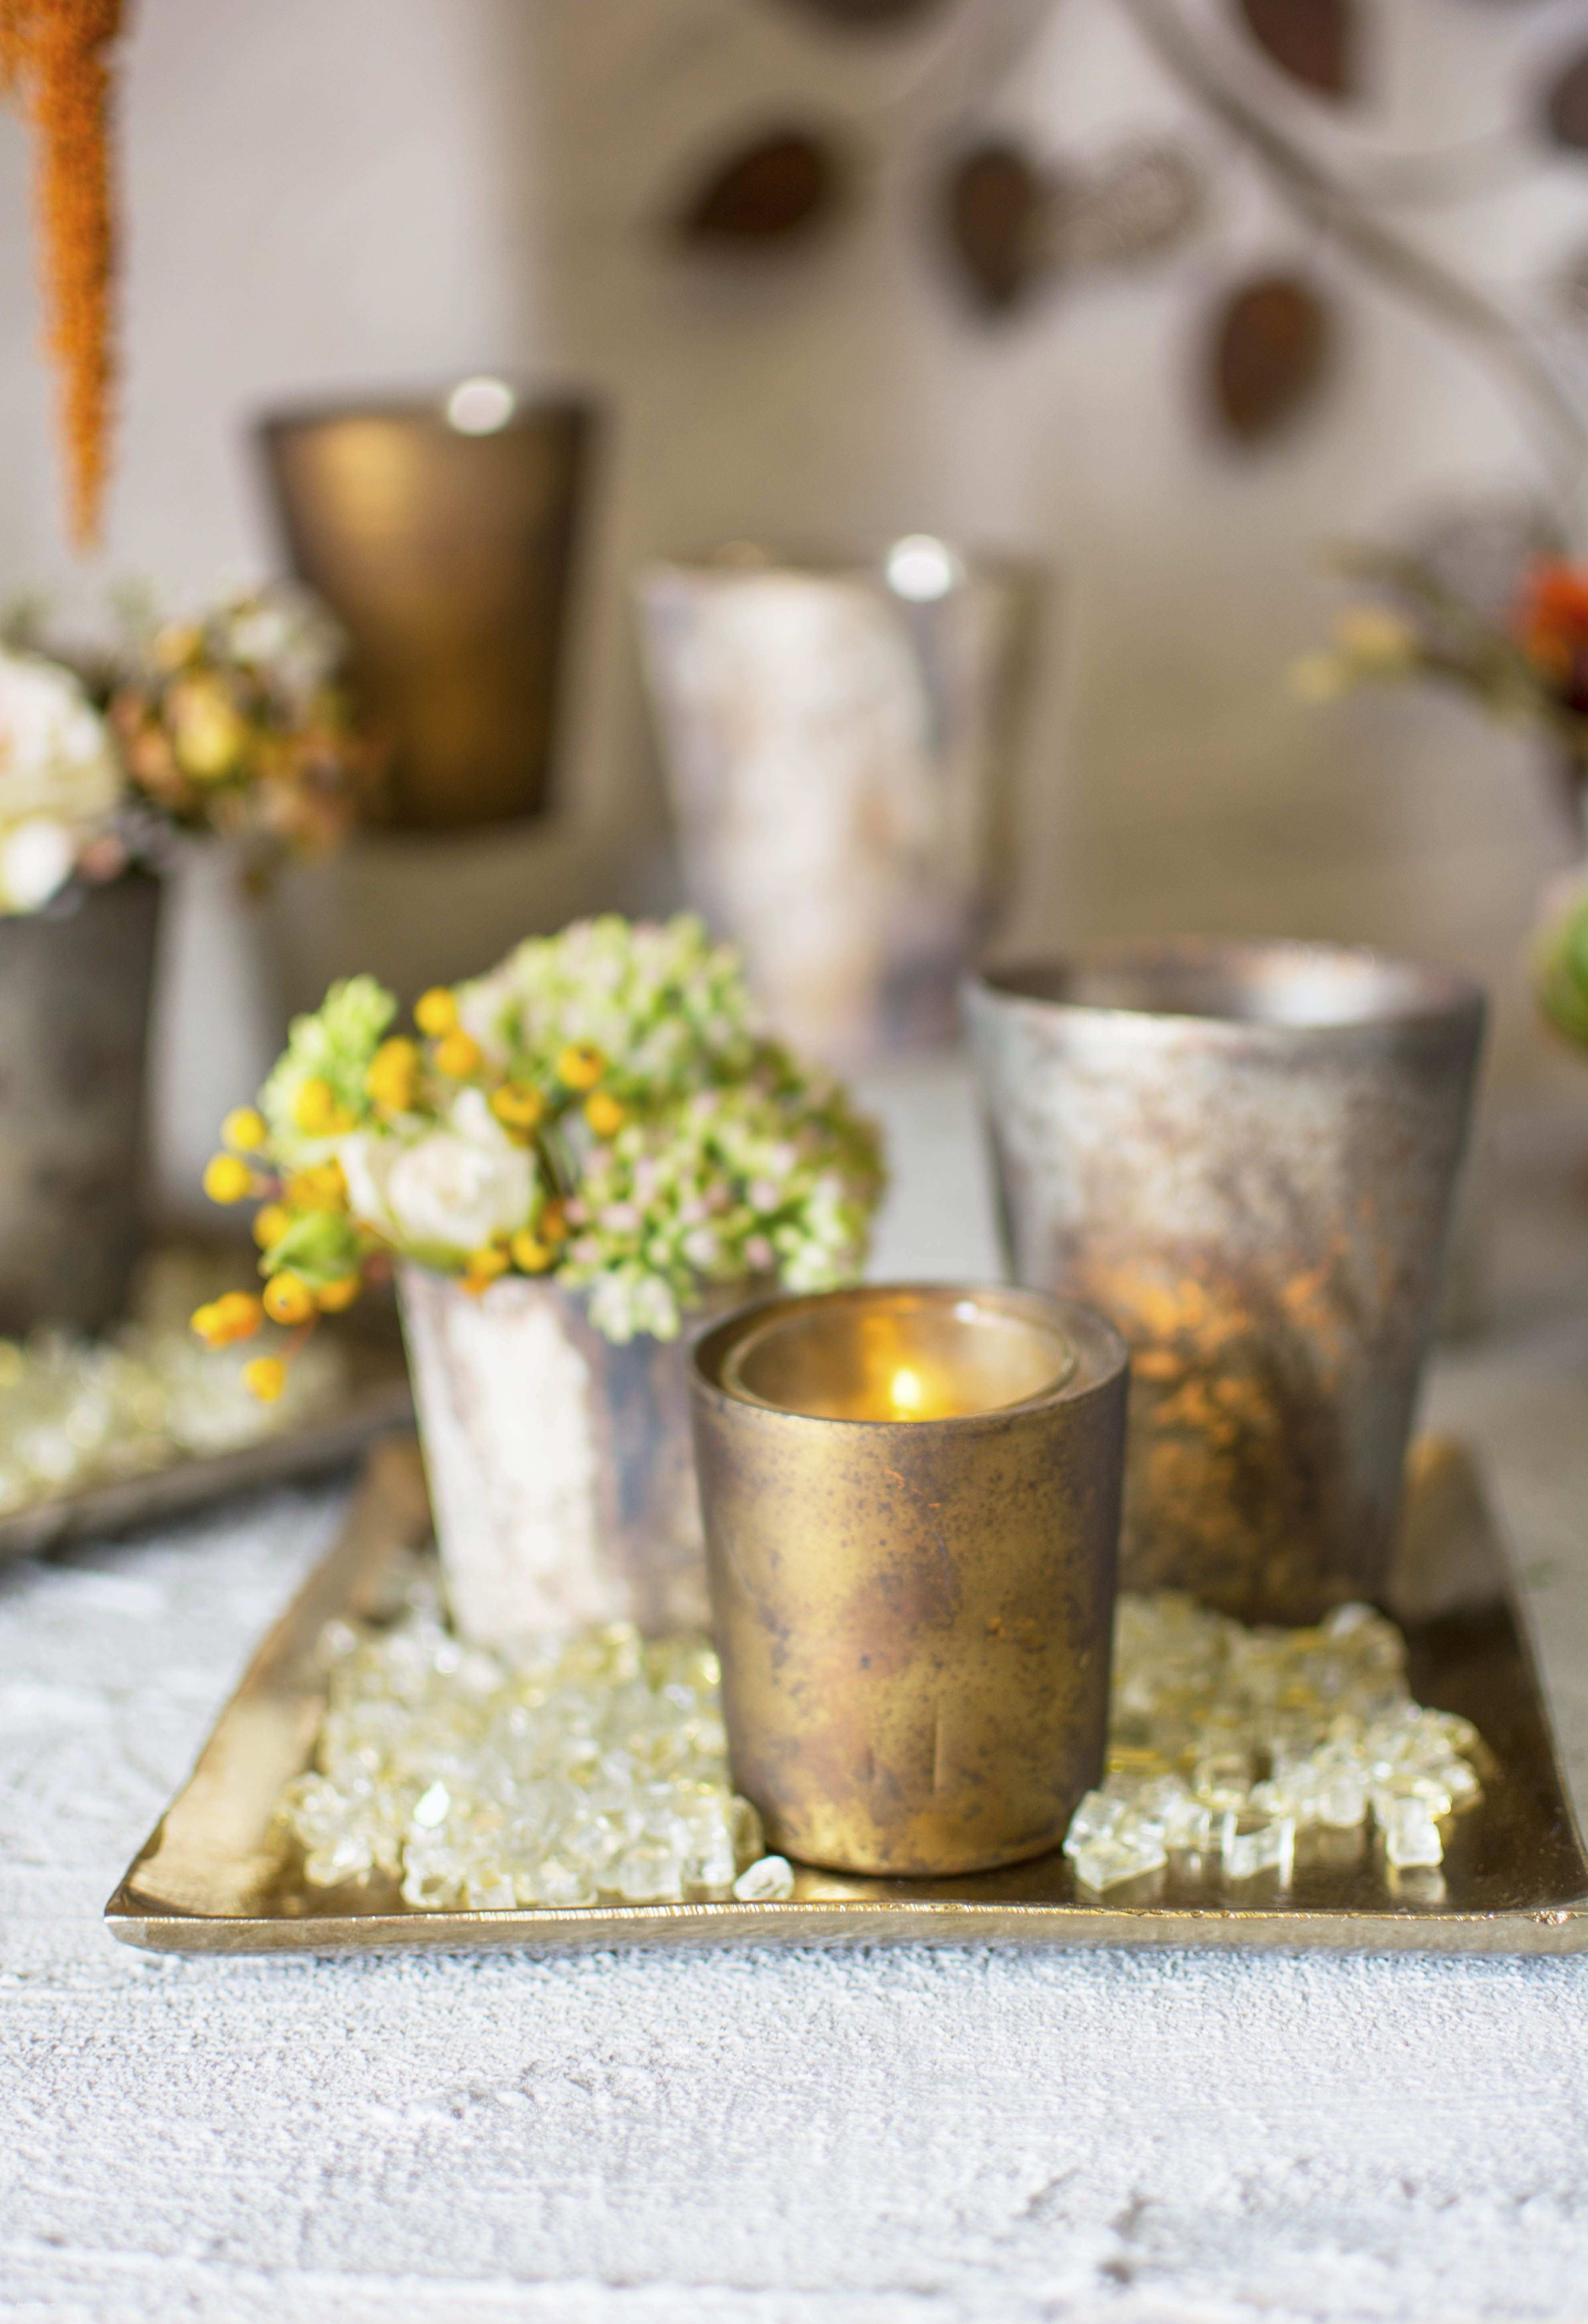 luxury vases for sale of gold mercury glass vases luxury neutral gold votive candles from intended for gold mercury glass vases luxury neutral gold votive candles from rustic mercury glass votive candle